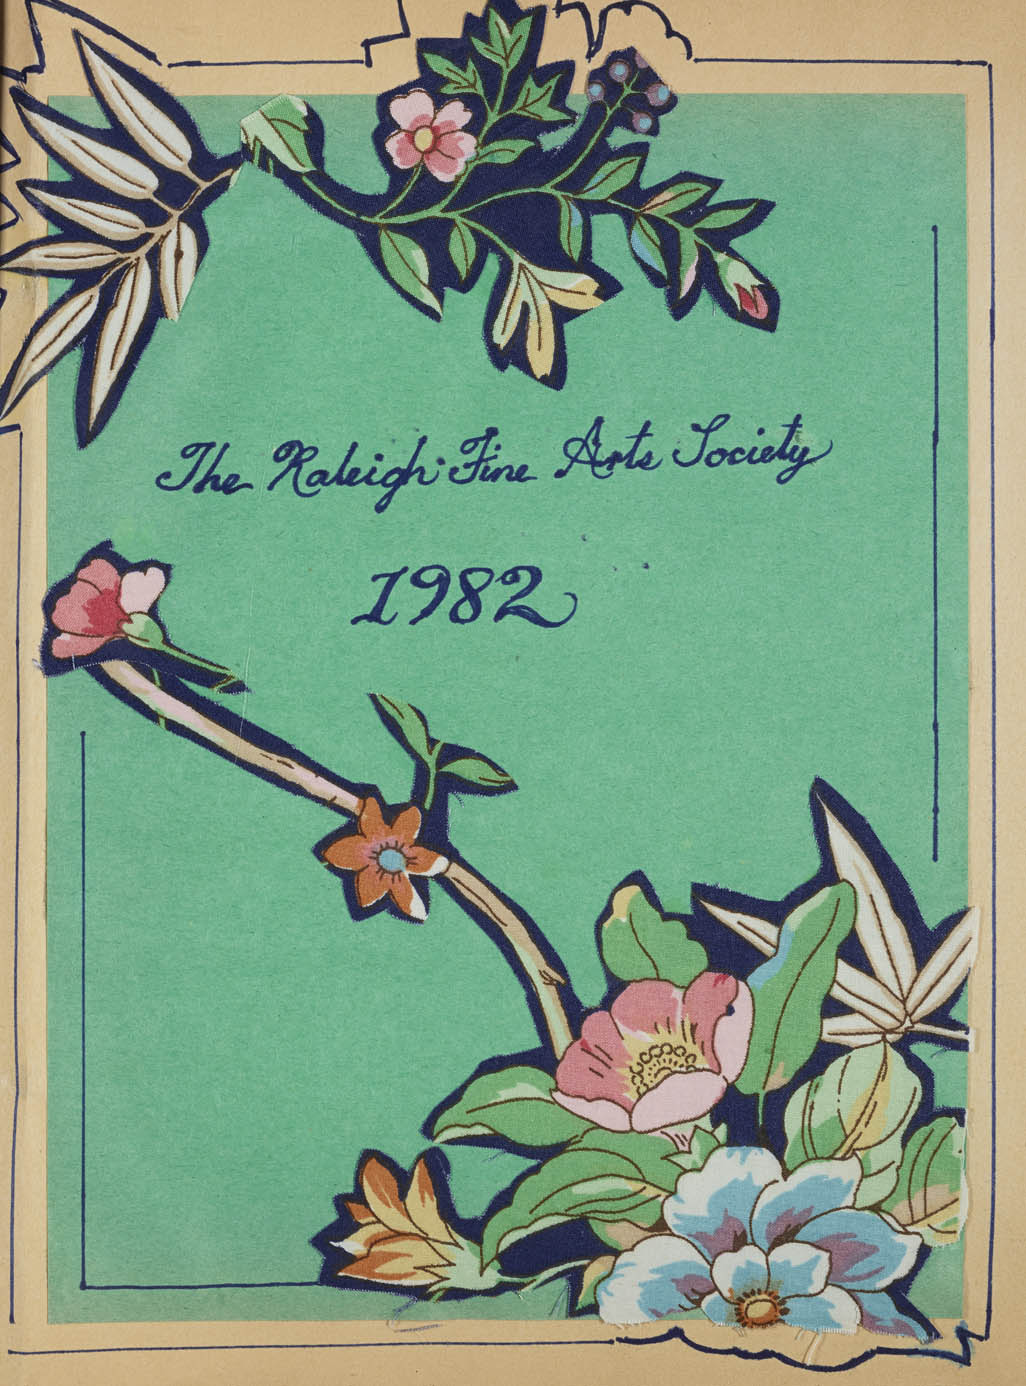 Raleigh Fine Arts Society Scrapbook, 1982